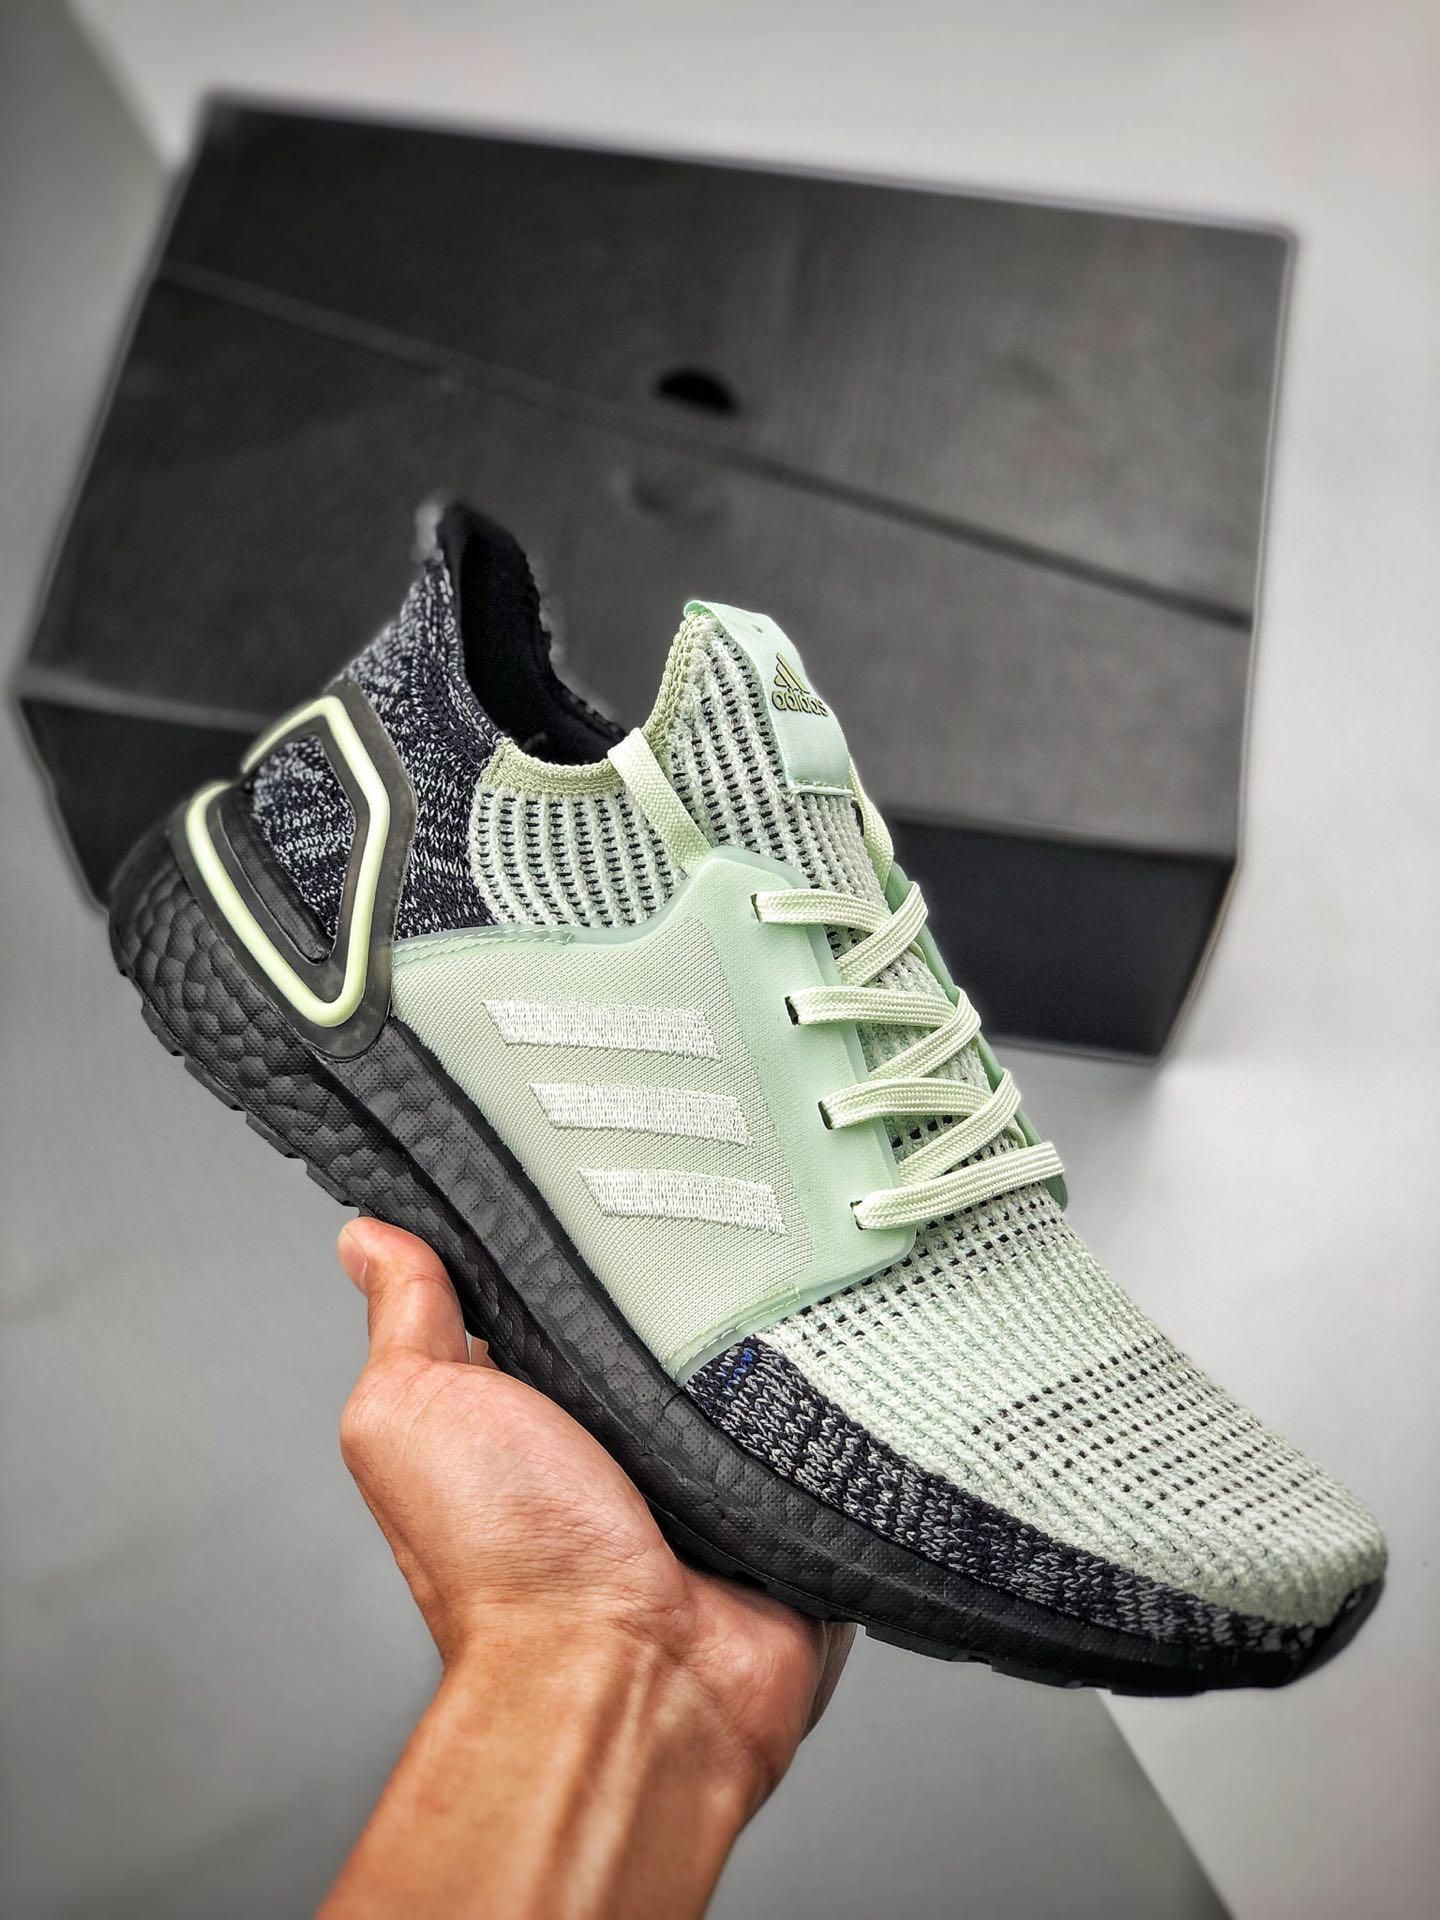 Adidas Ultra Boost 5.0 F34075 | Womens sneakers, Trendy sneakers